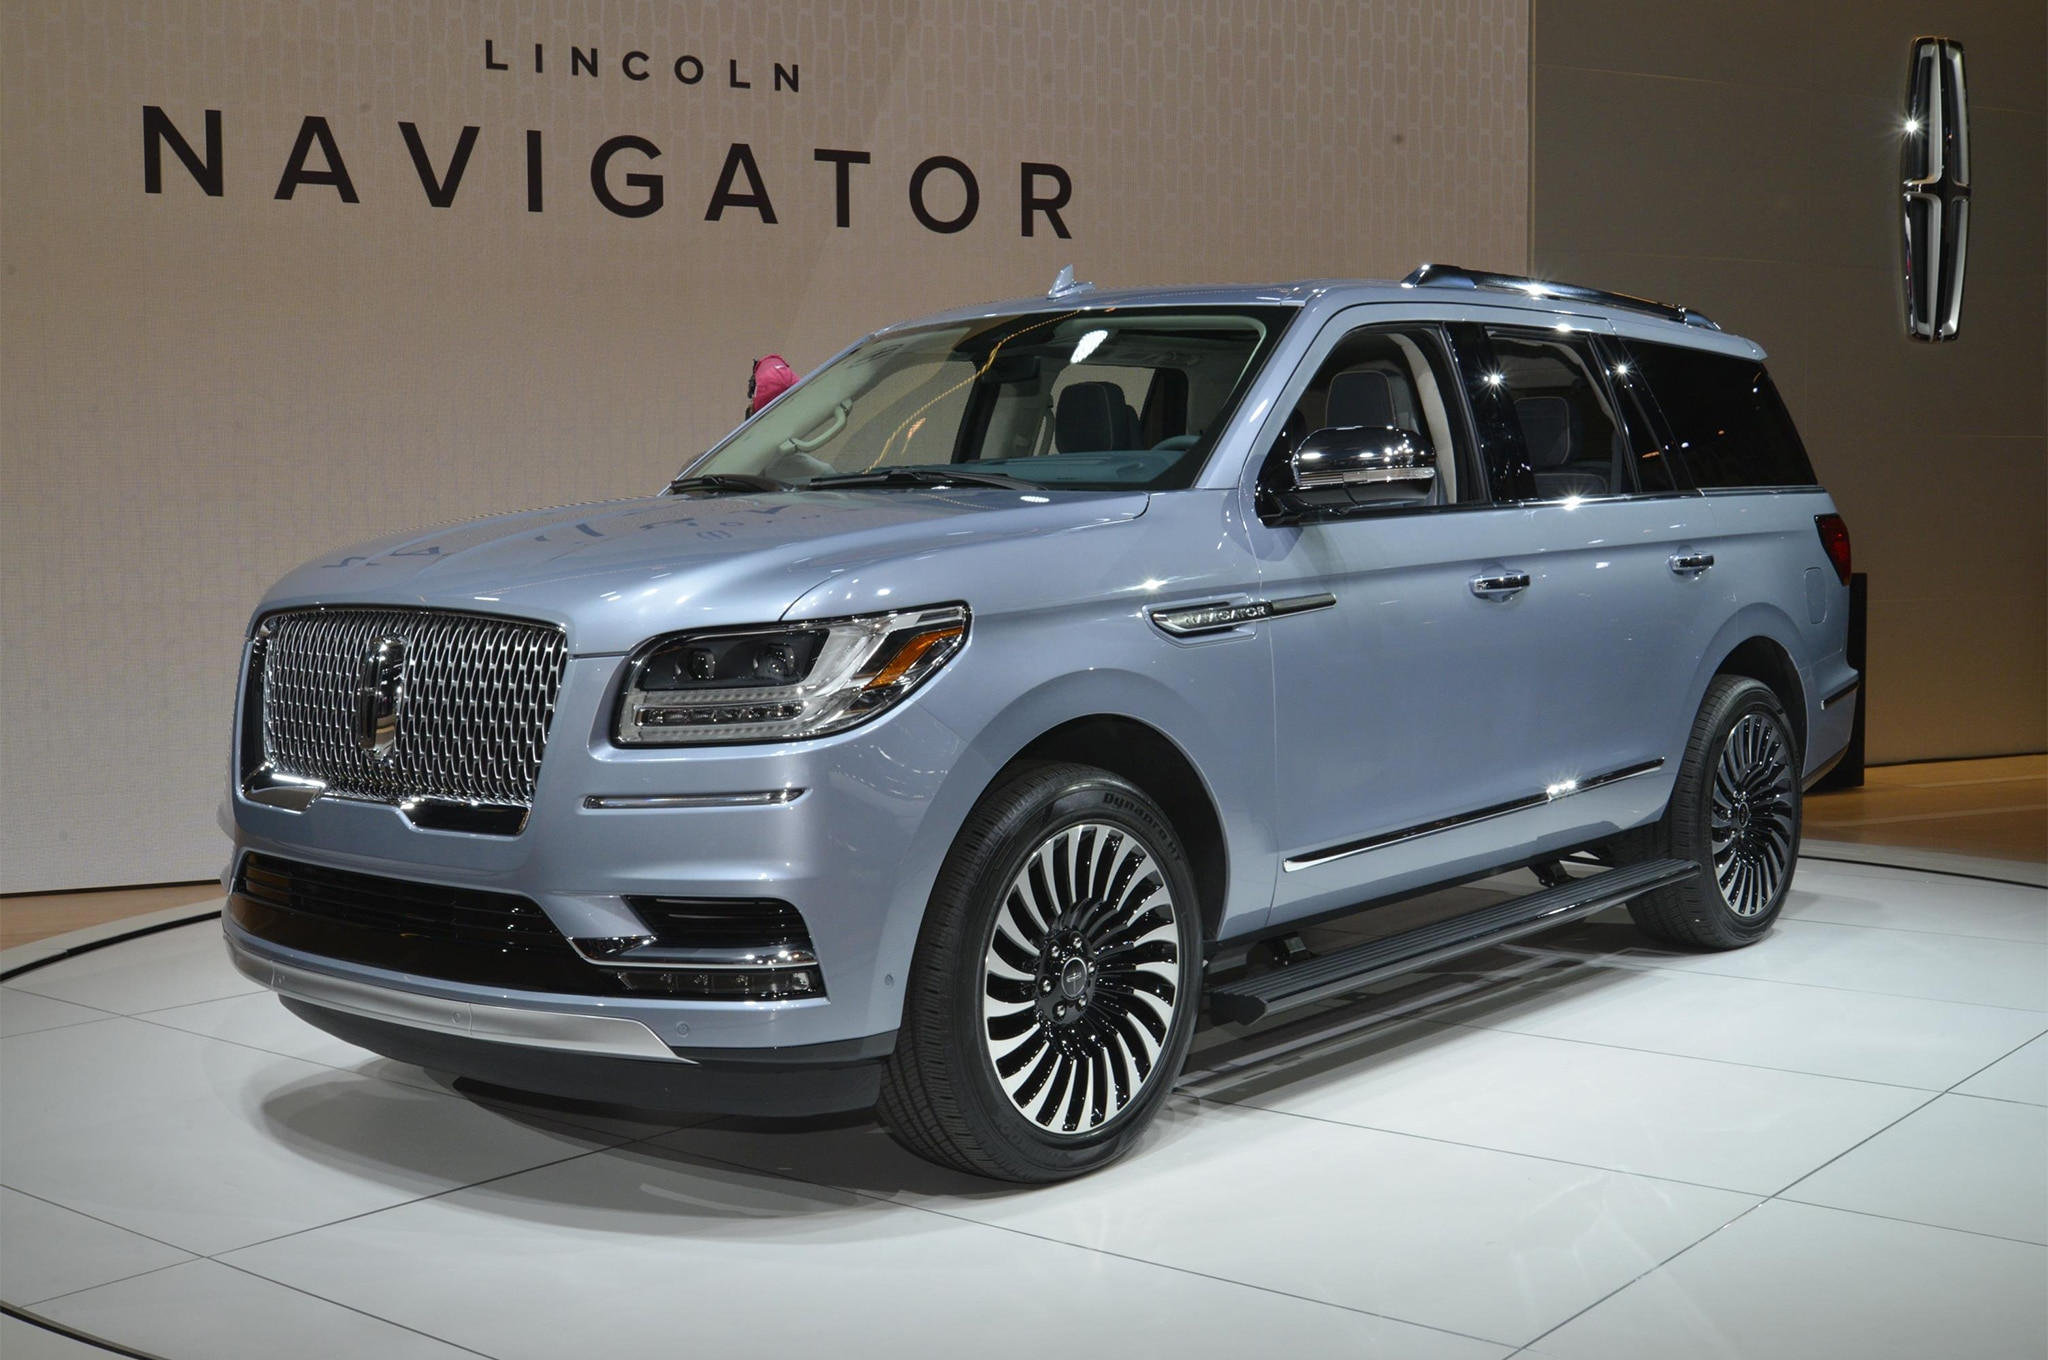 2018 Lincoln Navigator Front Three Quarter 06